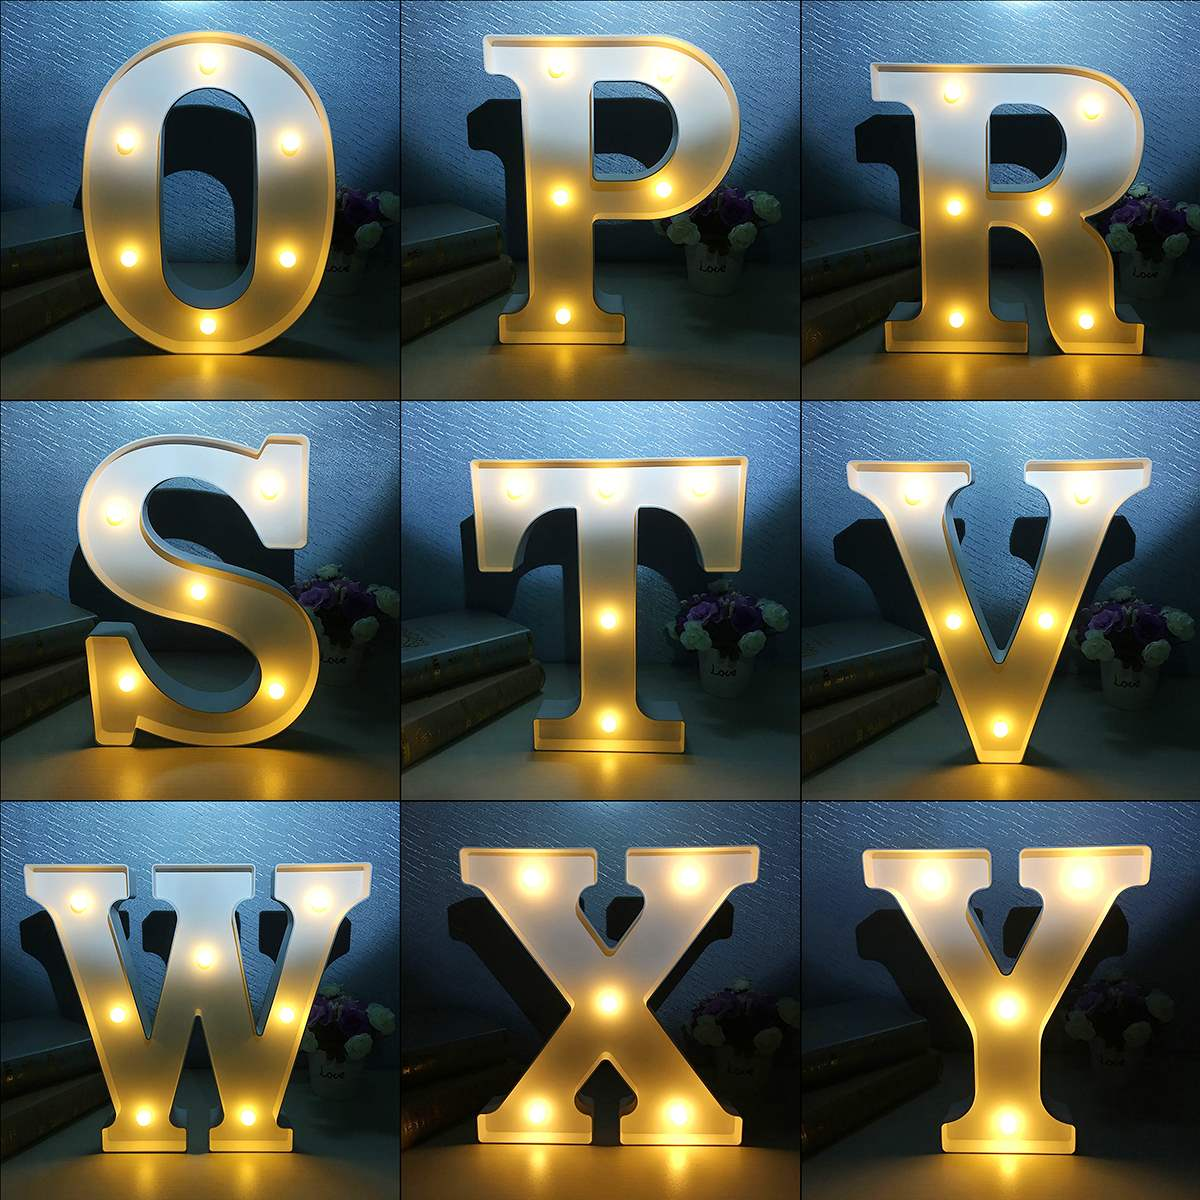 Best Price 12 Inch LED Night Light Lamp For Bedroom Christmas Marquee Letter Alphabet Light Vintage Circus Style Light Up цена